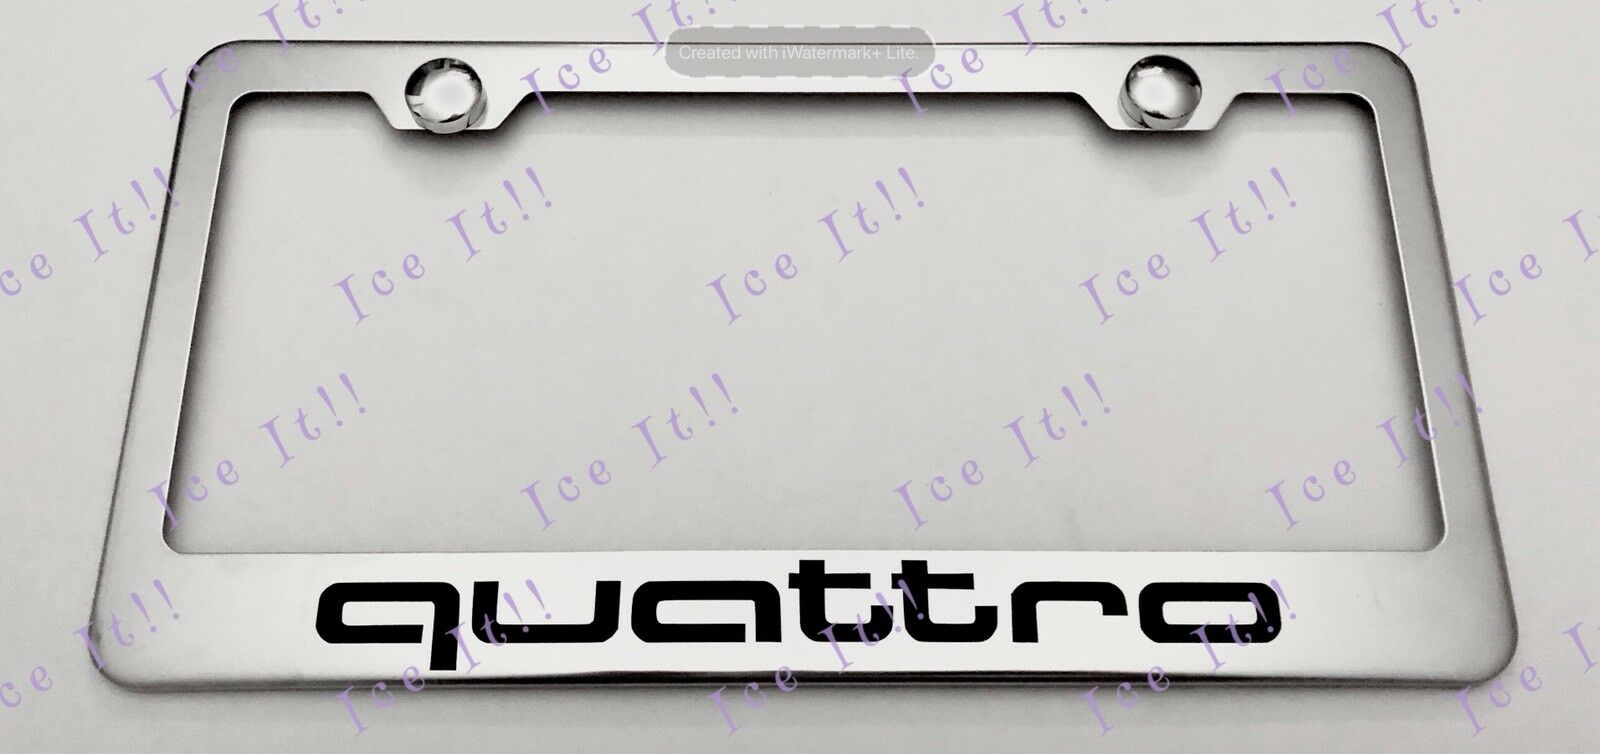 QUATTRO AUDI STAINLESS Steel License Plate Frame Rust Free W Bolt - Audi license plate frame